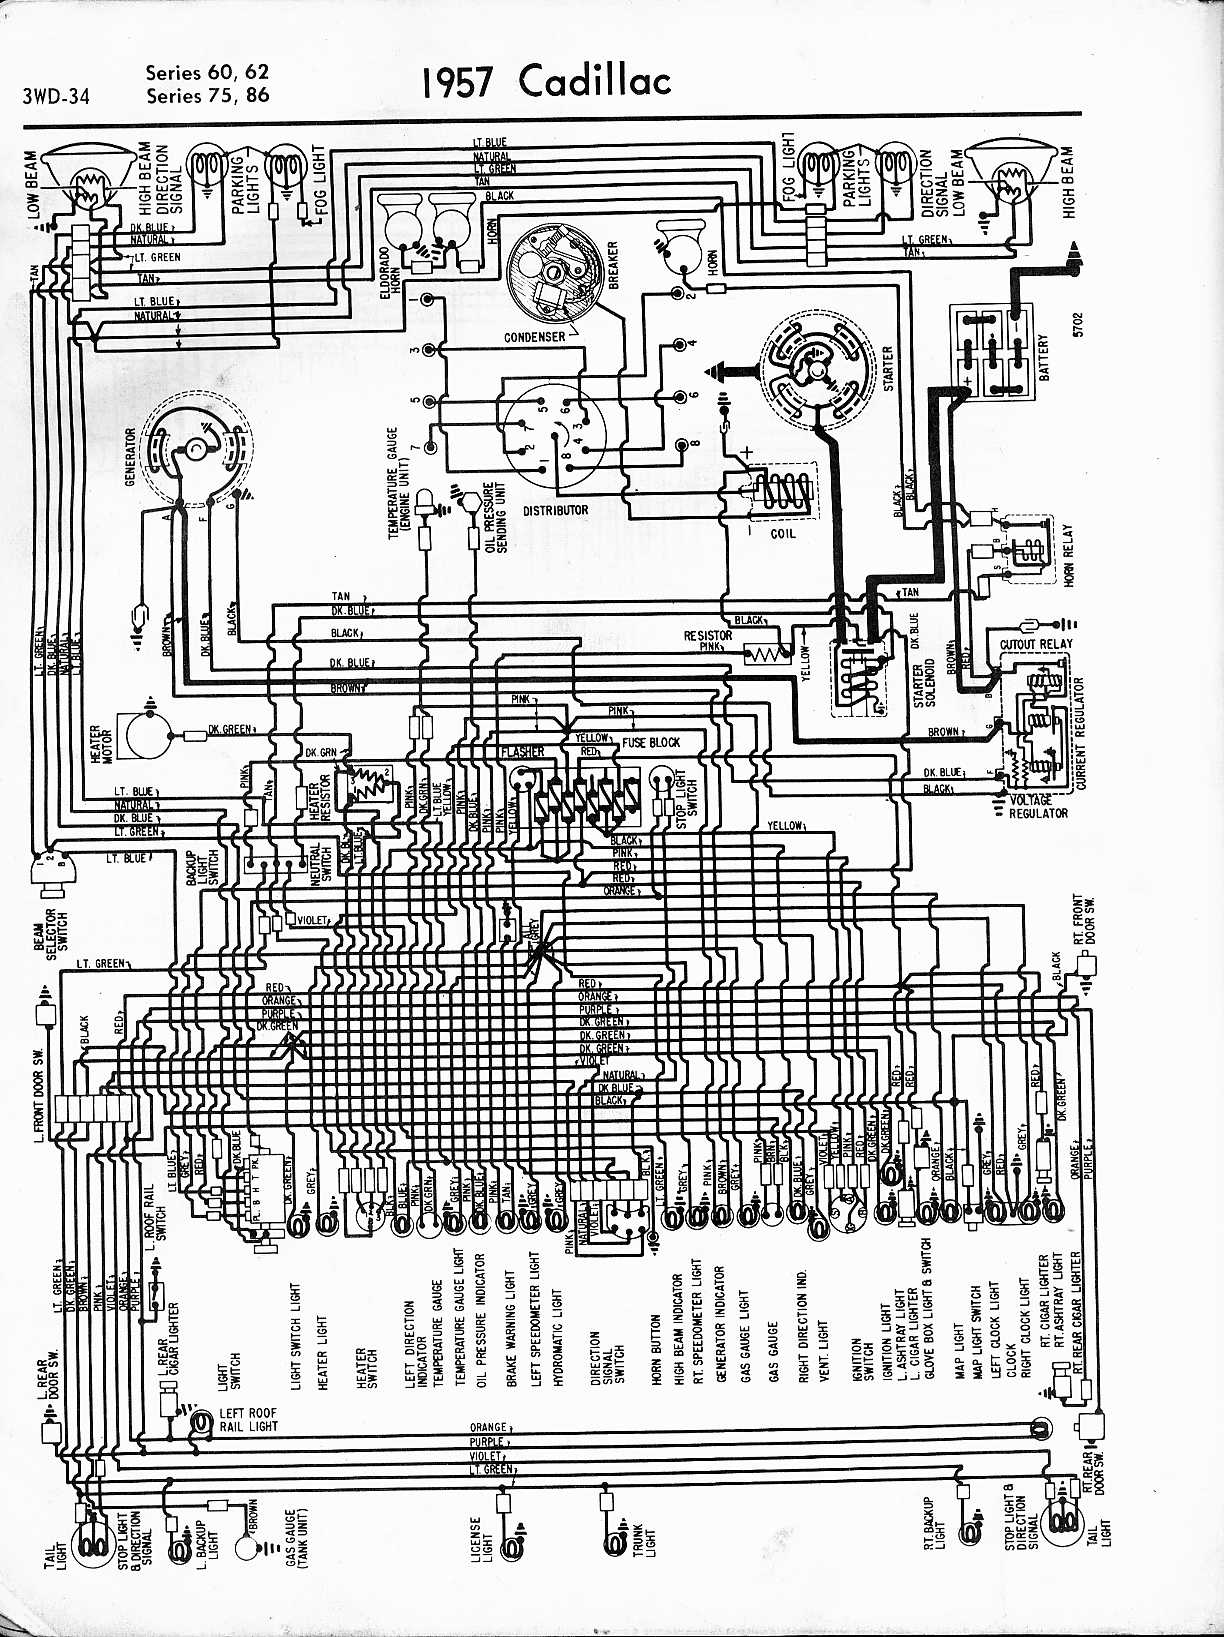 95 Bounder Wiring Diagram furthermore Cadillacindex as well 1144635 Neg Cable Removed Engine Quits 2 furthermore Ford Taurus 1996 Fuse Box Diagram Usa Version additionally 1998 Honda Civic Fuse Box Diagram 2. on alternator fuse location 1998 lincoln